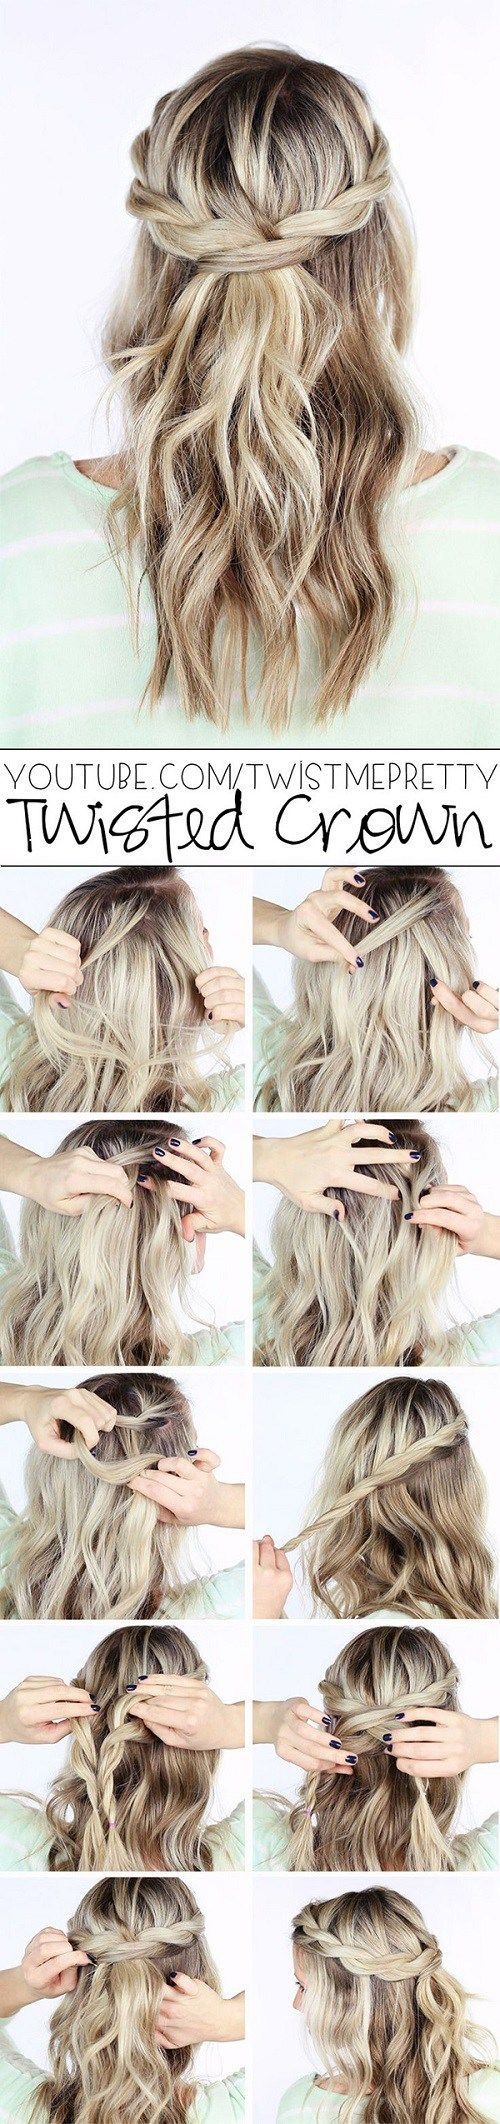 Braided Half Updo Tutorial More